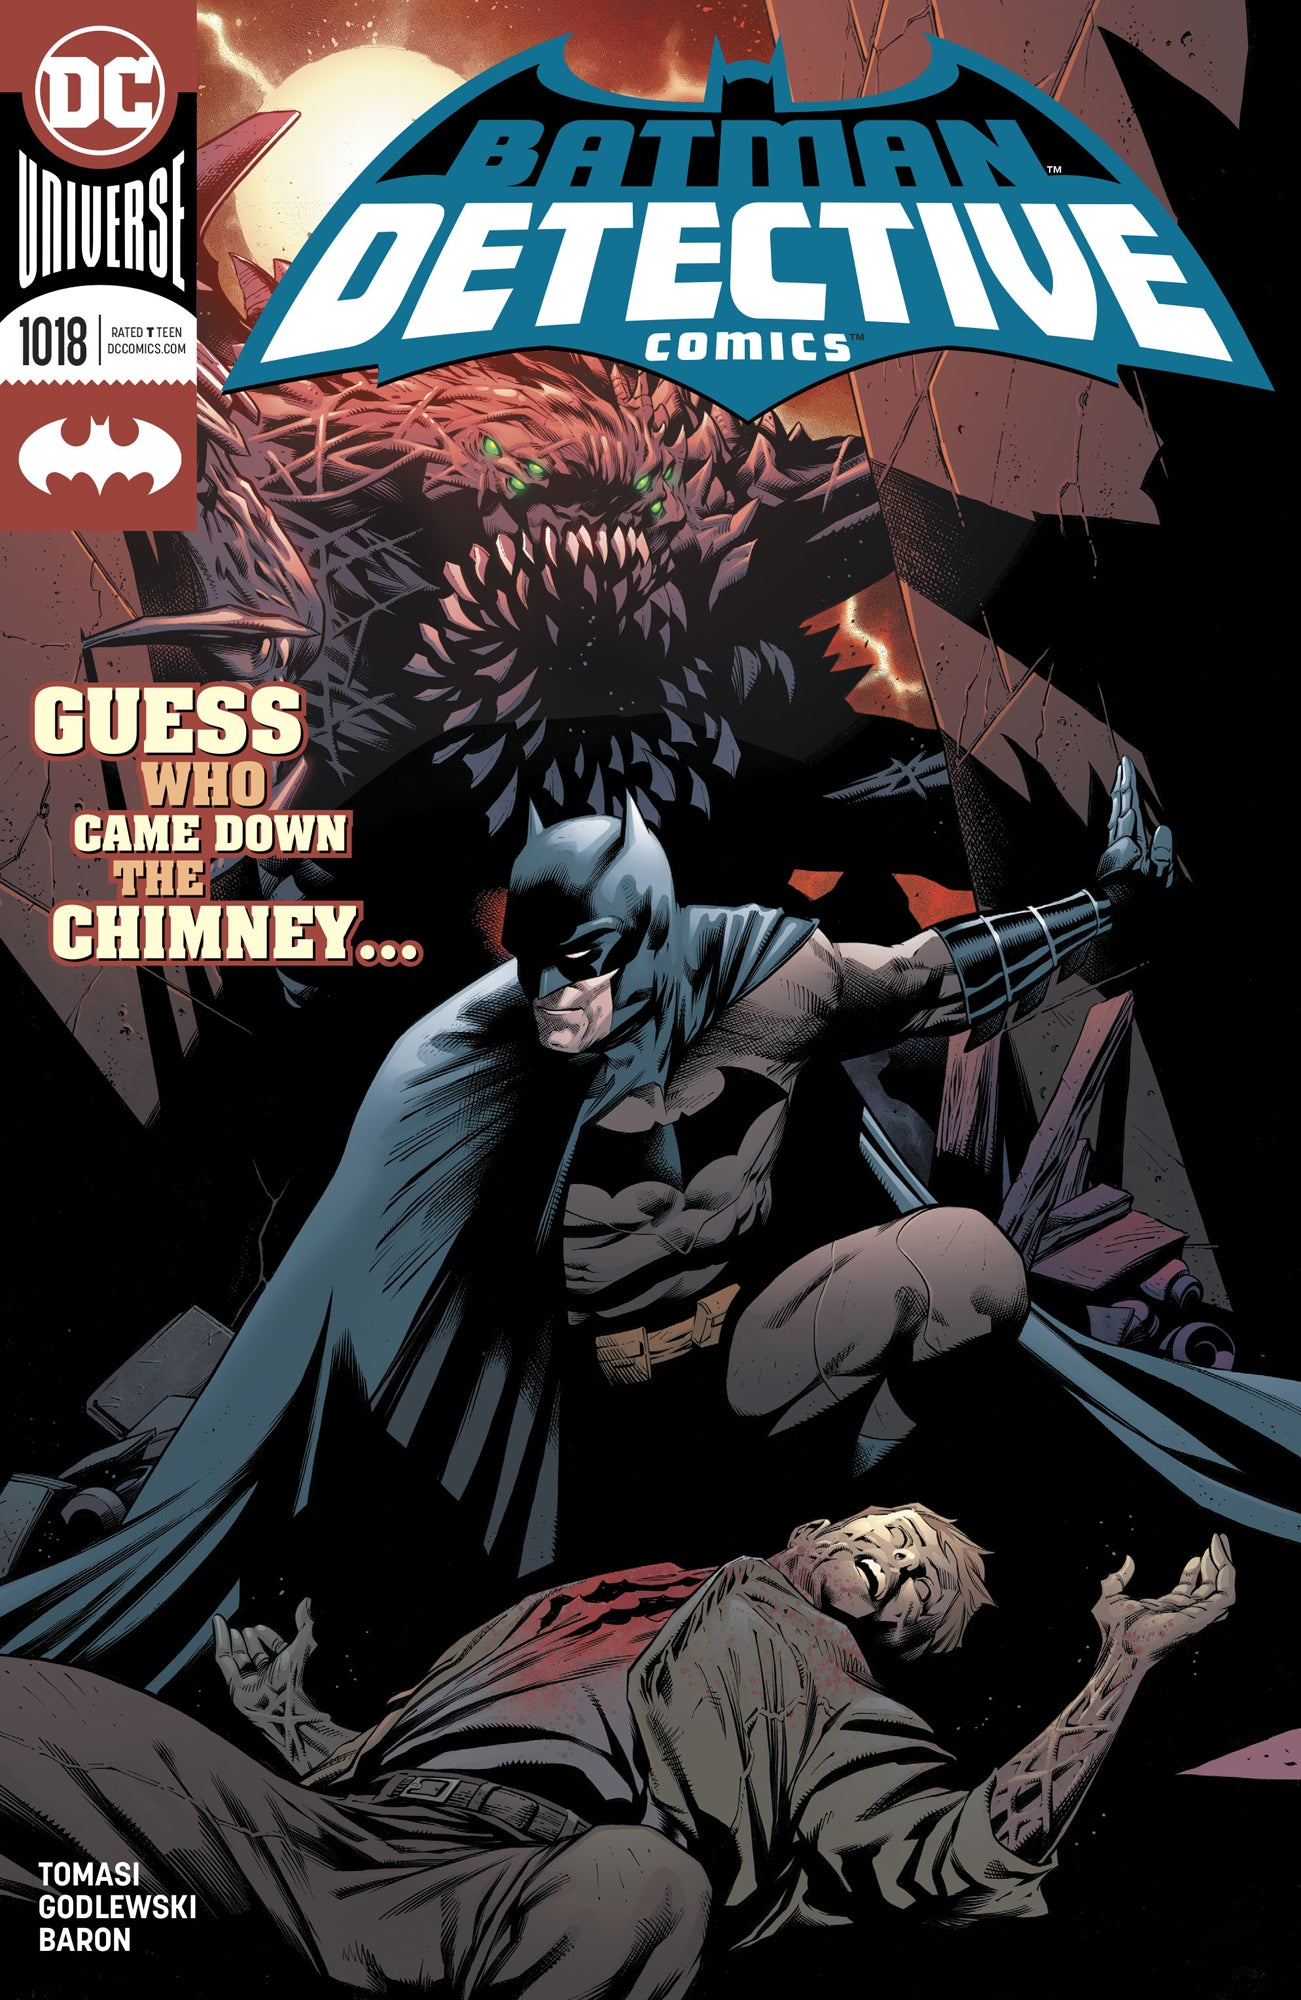 DETECTIVE COMICS #1018 | Game Master's Emporium (The New GME)